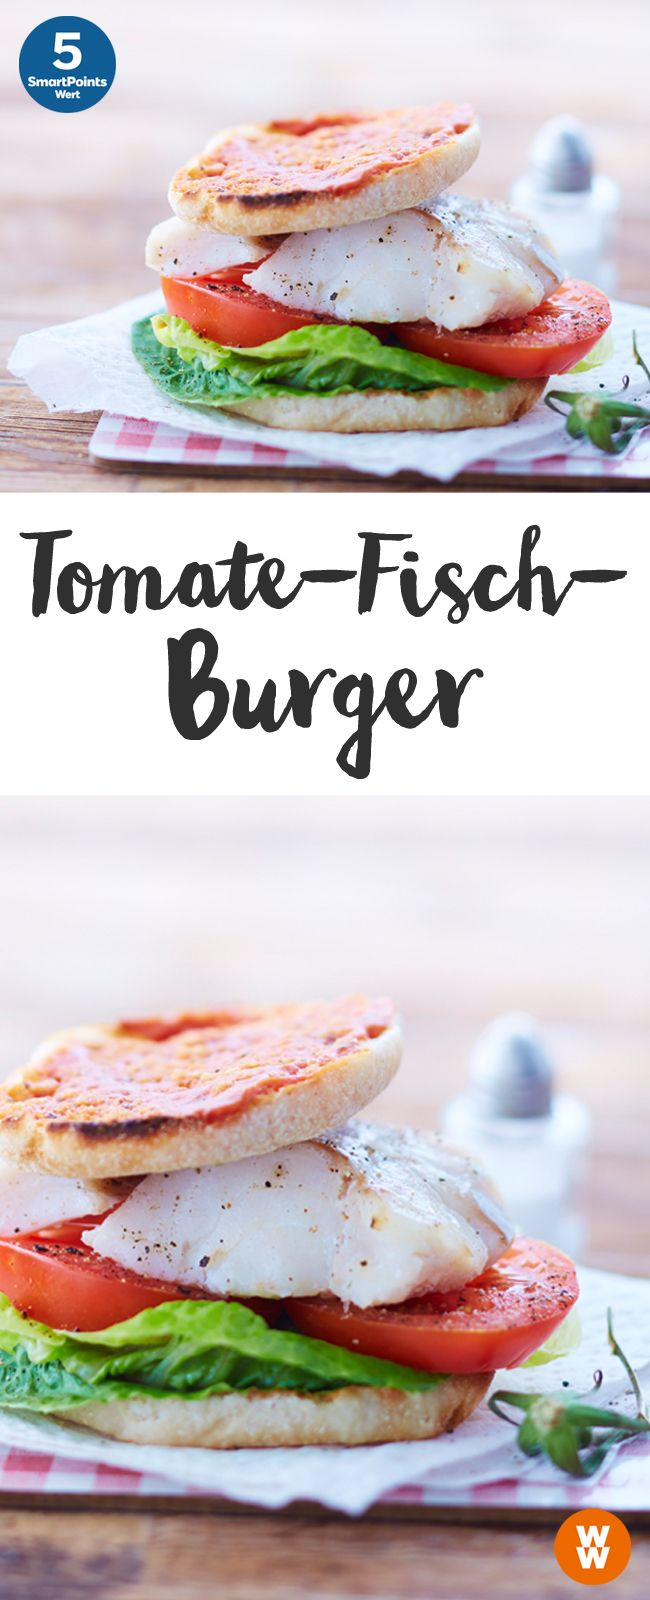 Tomaten-Fisch-Burger | 5 SmartPoints/Portion, Weight Watchers, fertig in 30 min.